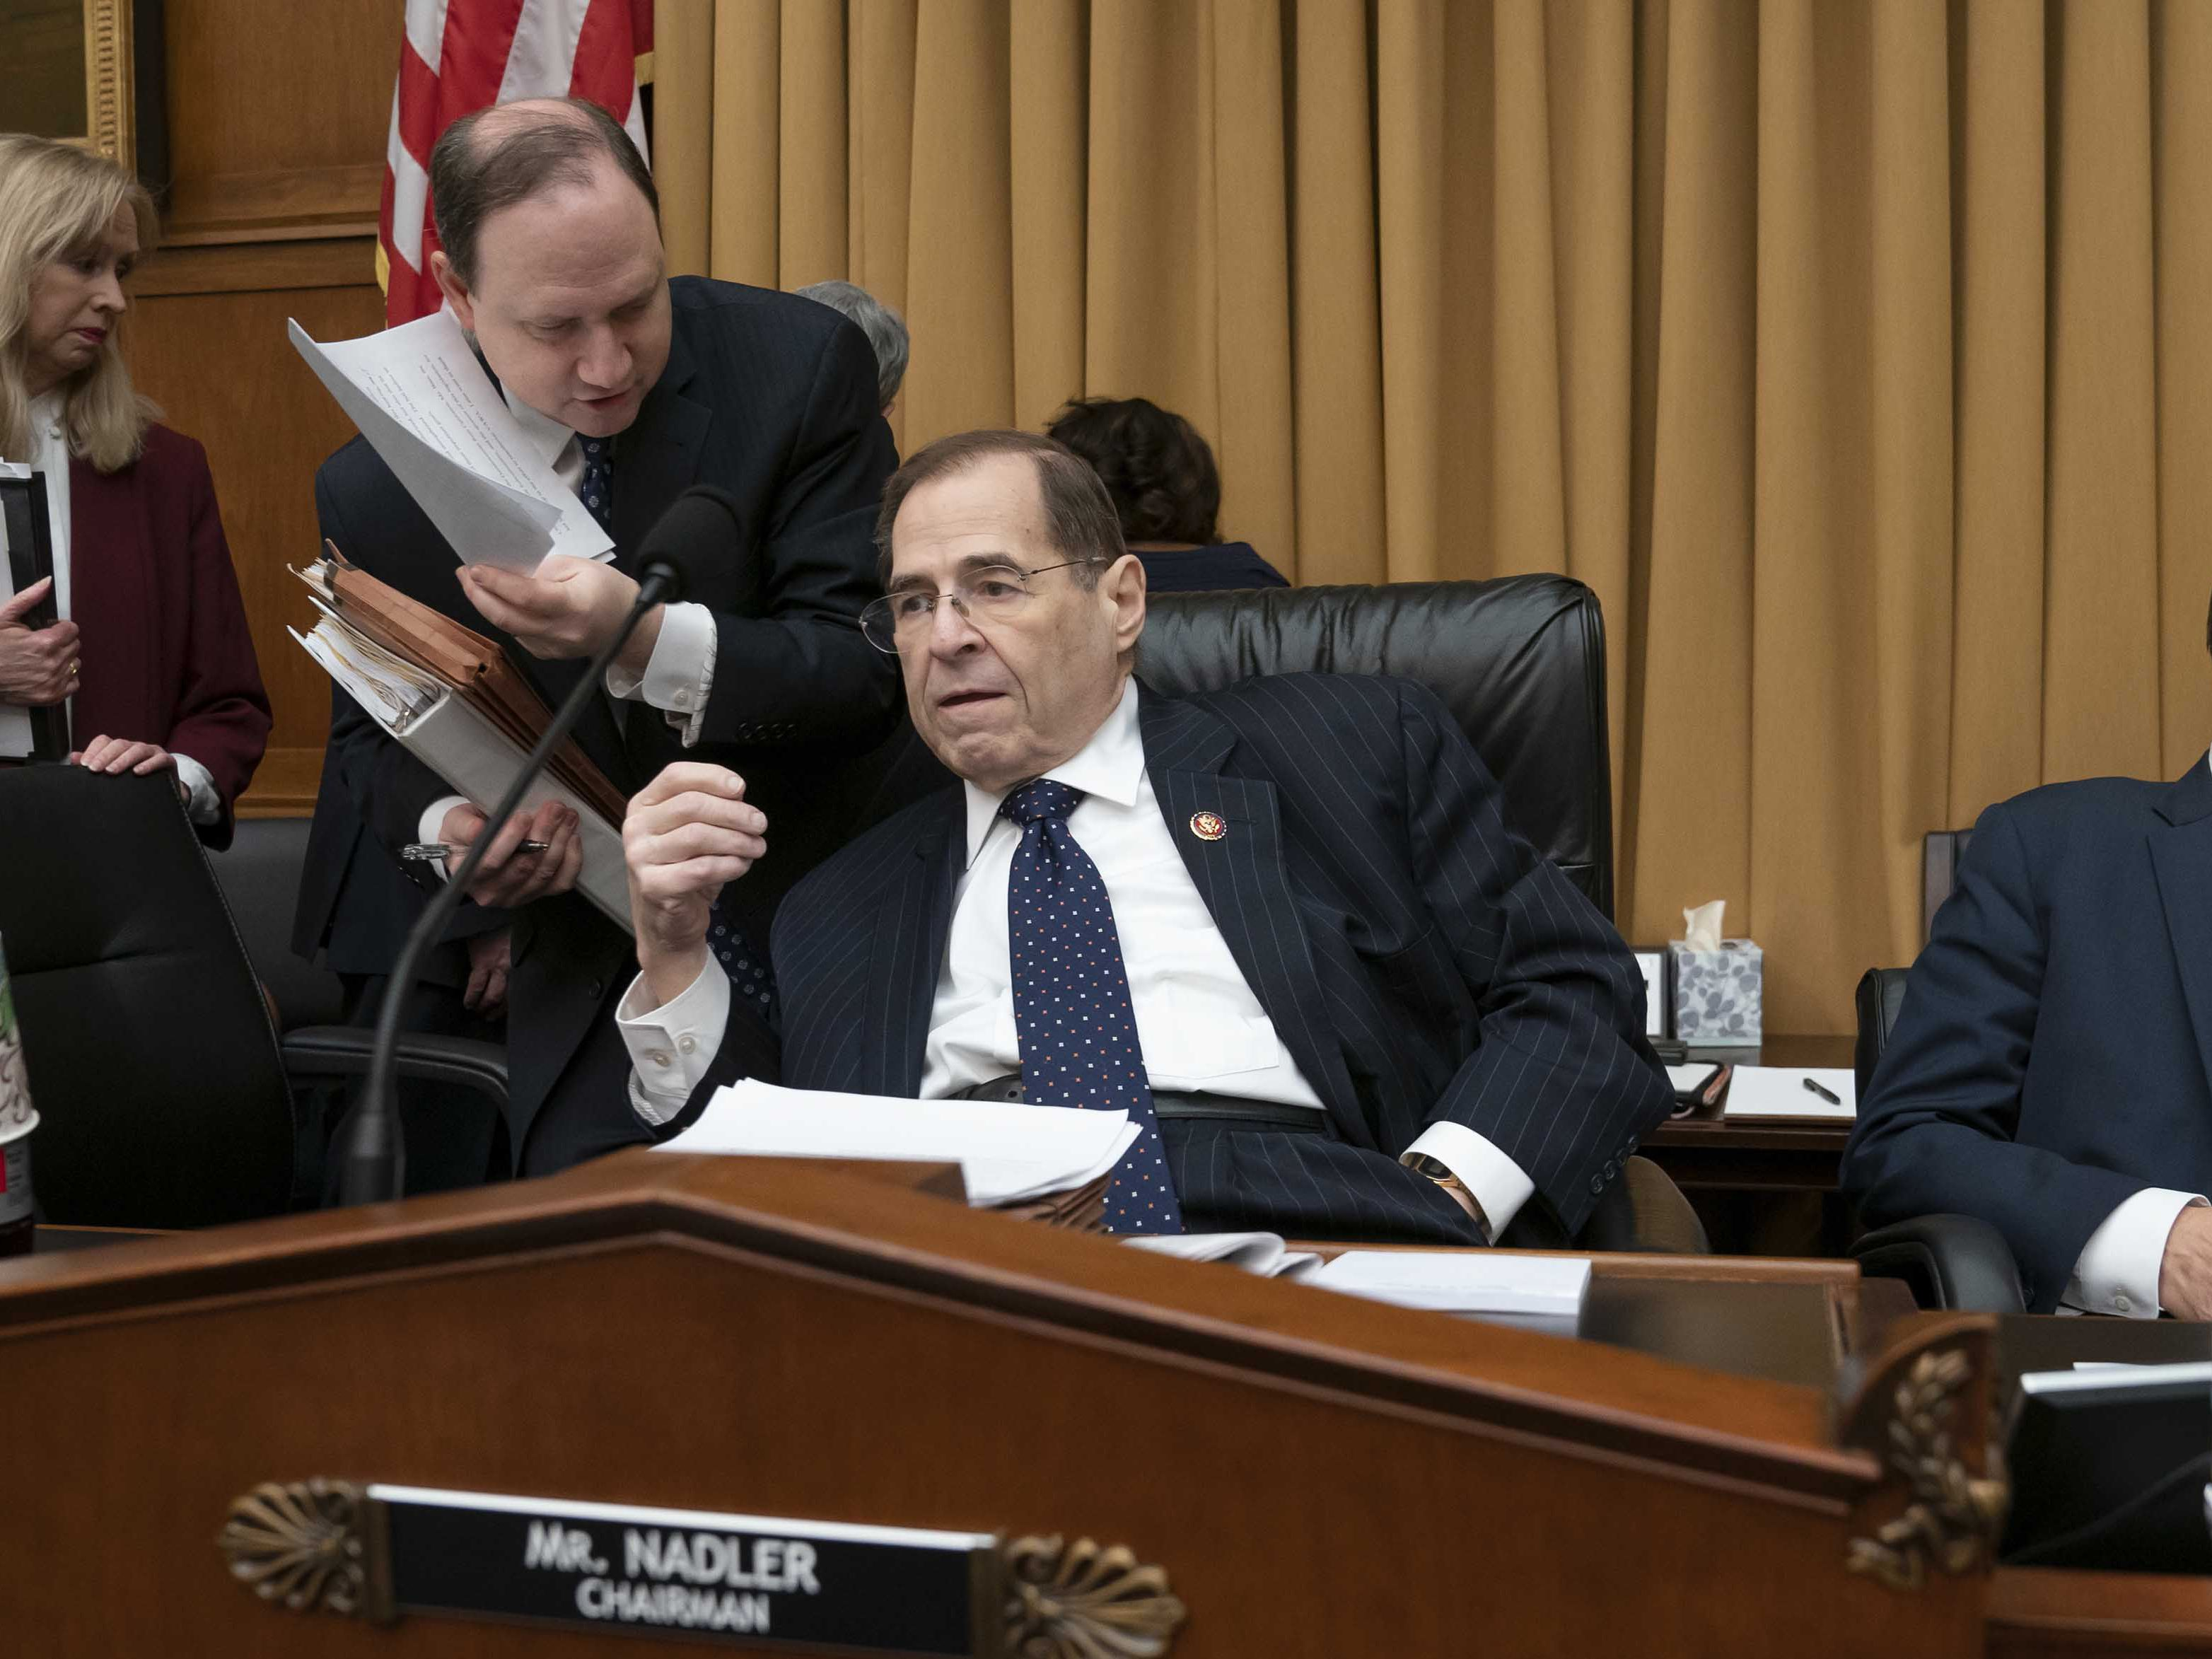 House Judiciary Committee to hold hearing on rise of white nationalism, committee source says